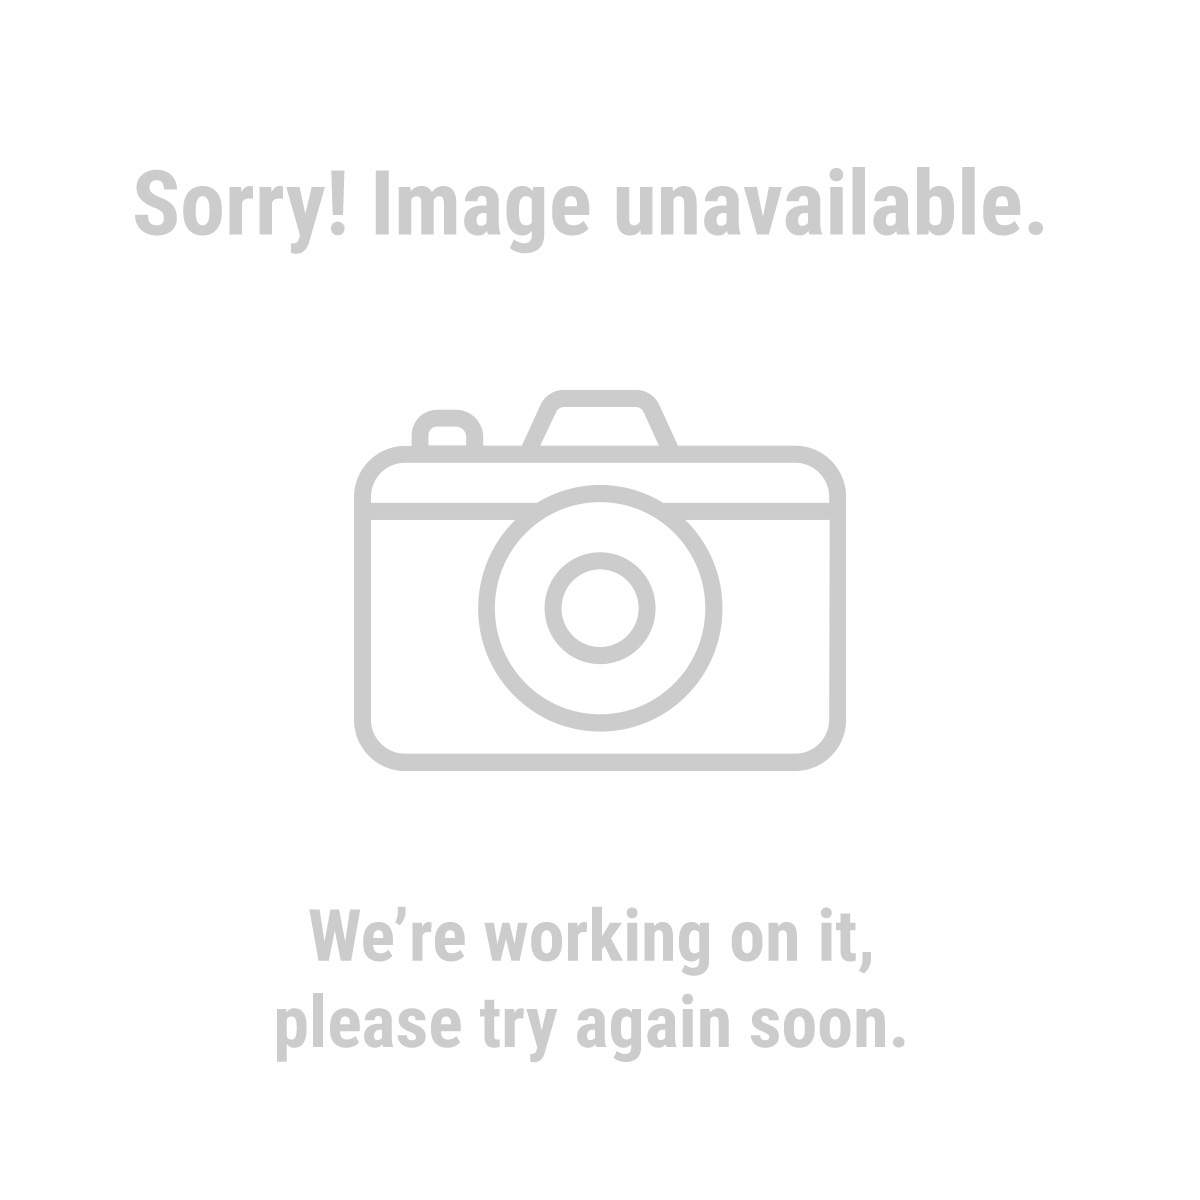 Pittsburgh 67815 25 oz. California Framing Hammer